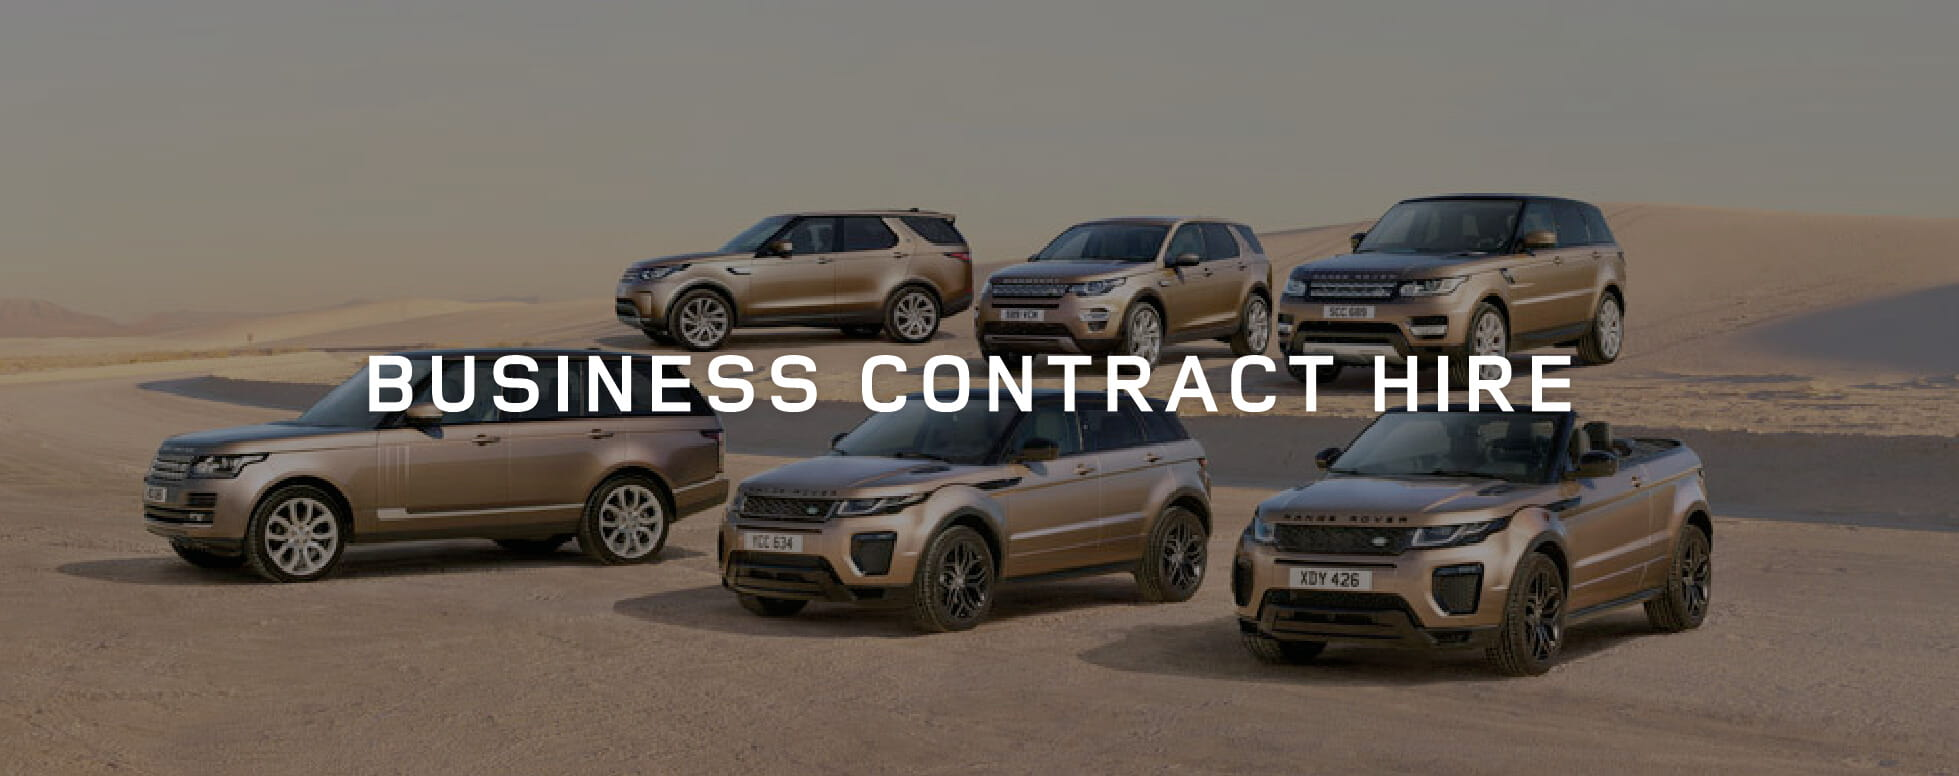 Land Rover Business Contract Hire Offer BB